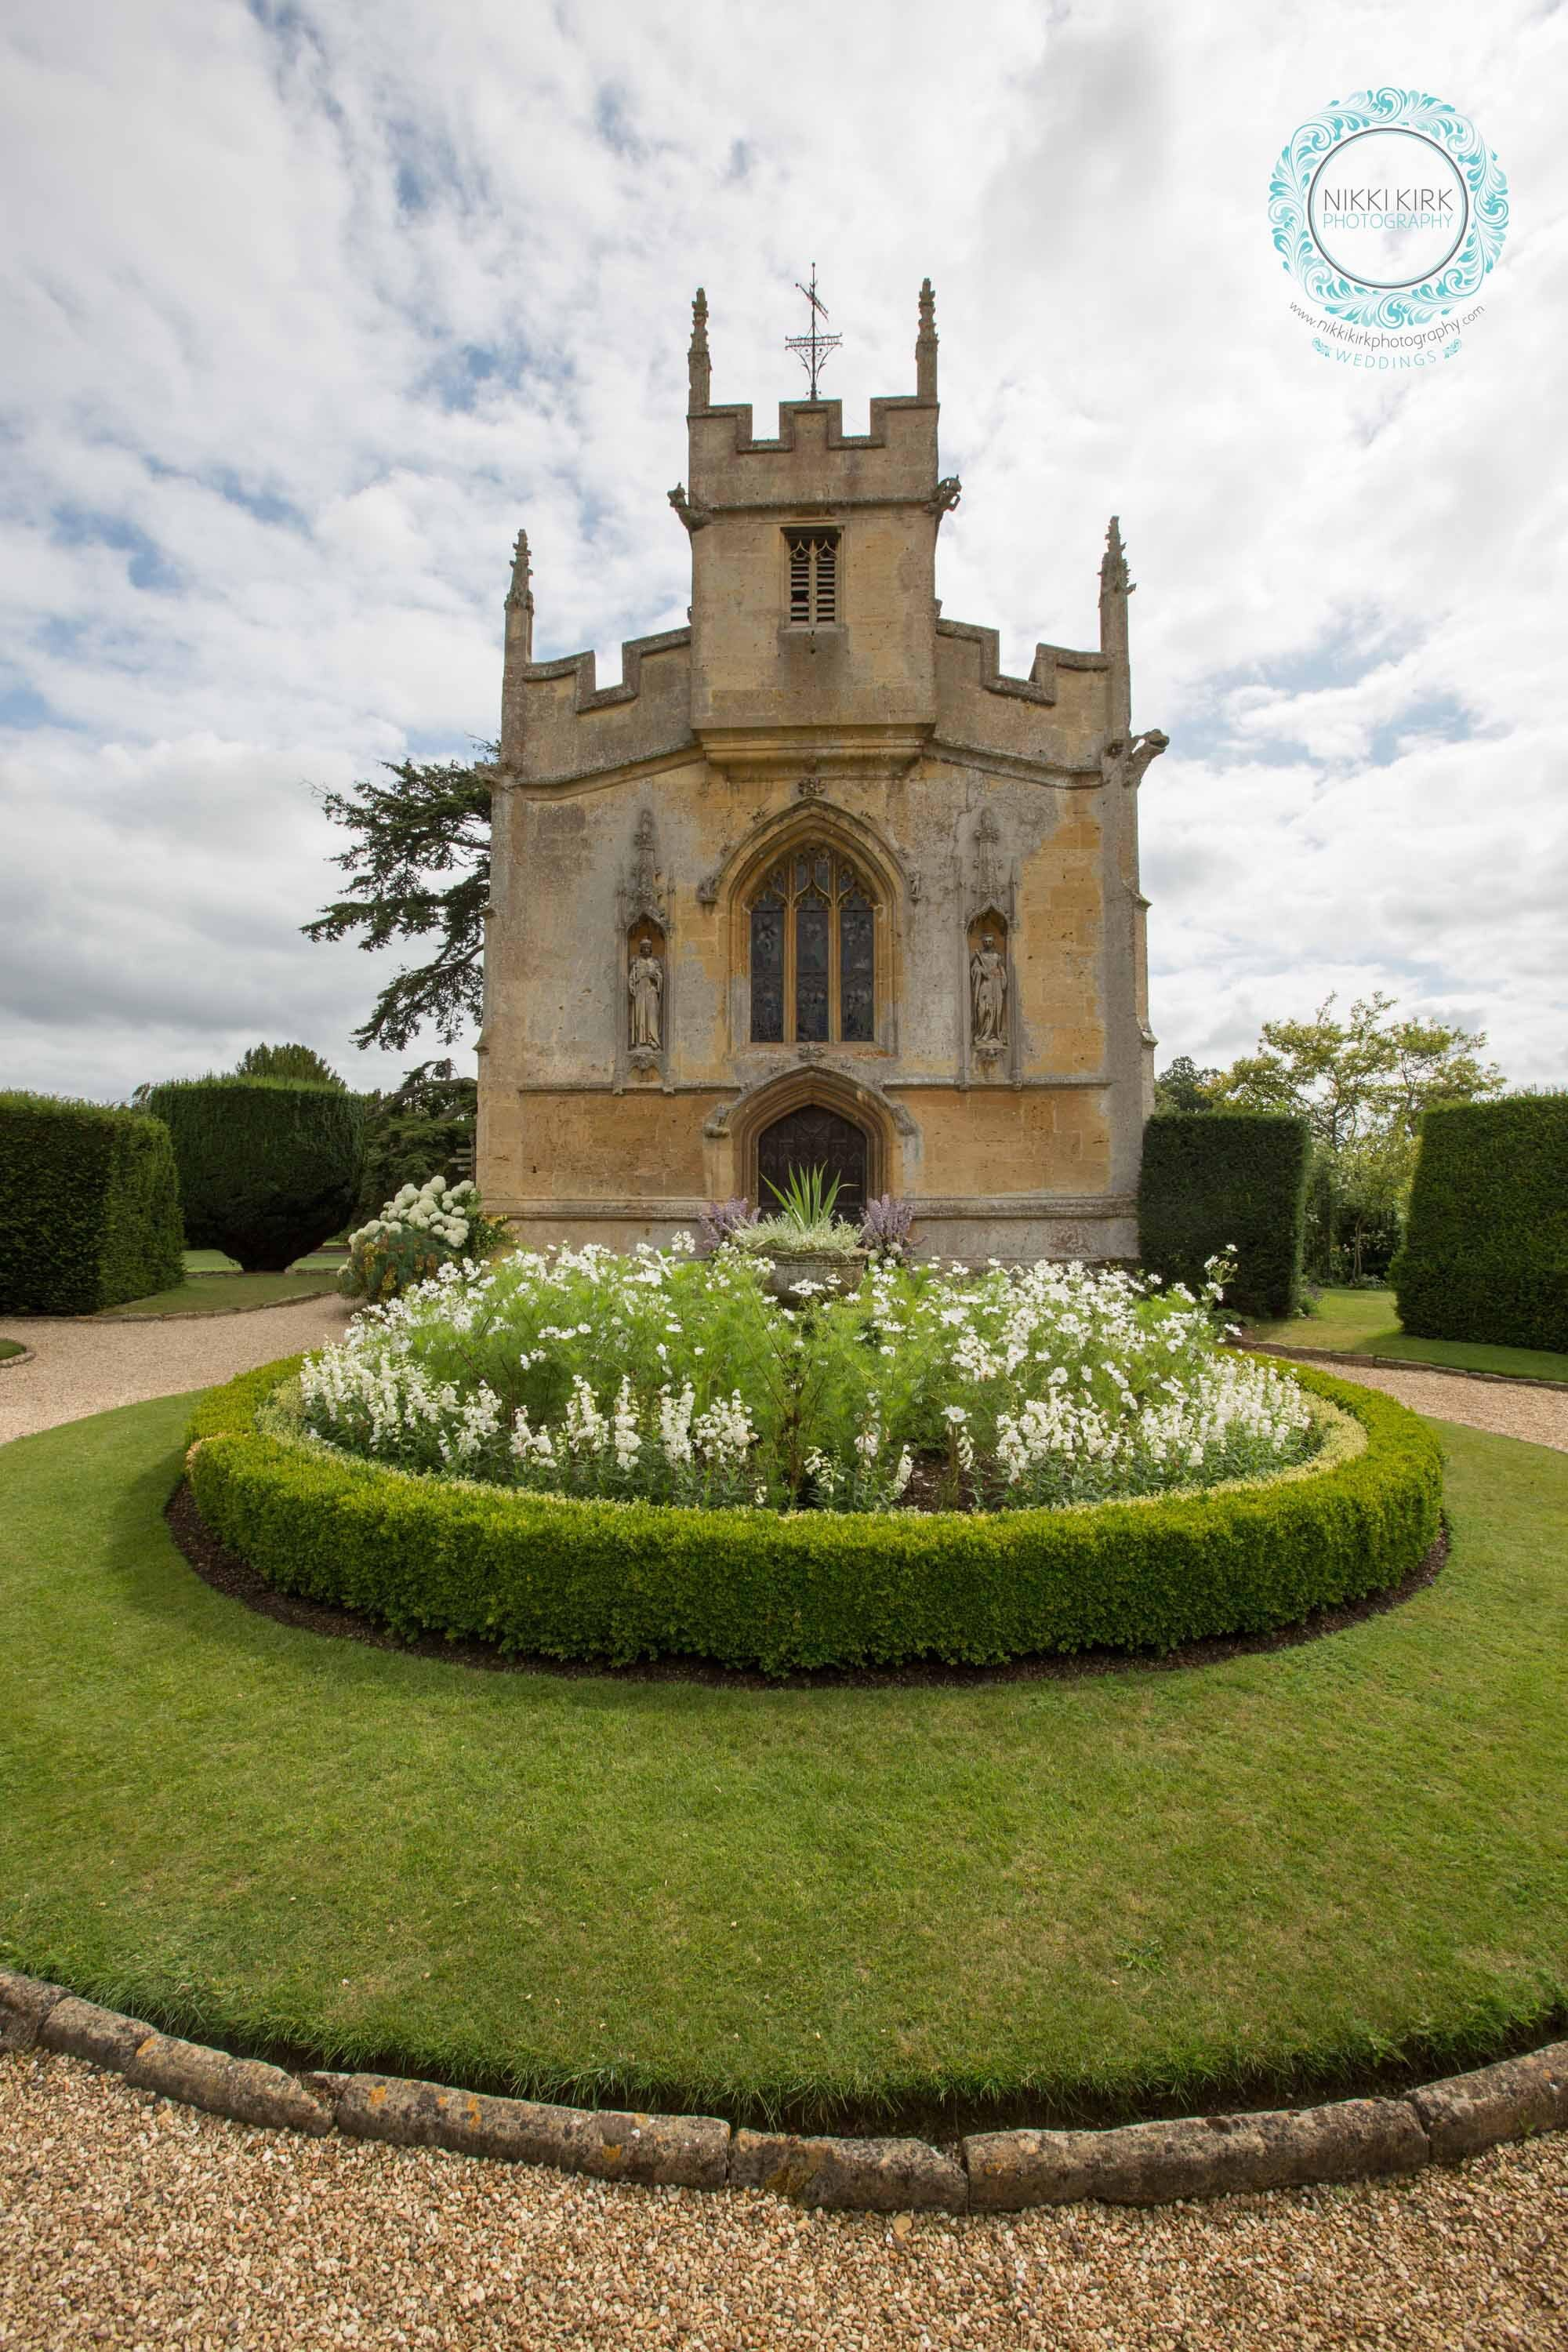 Sudeley-Castle-Cotswolds-婚礼获奖-婚礼策划师-Perfection-42.jpg